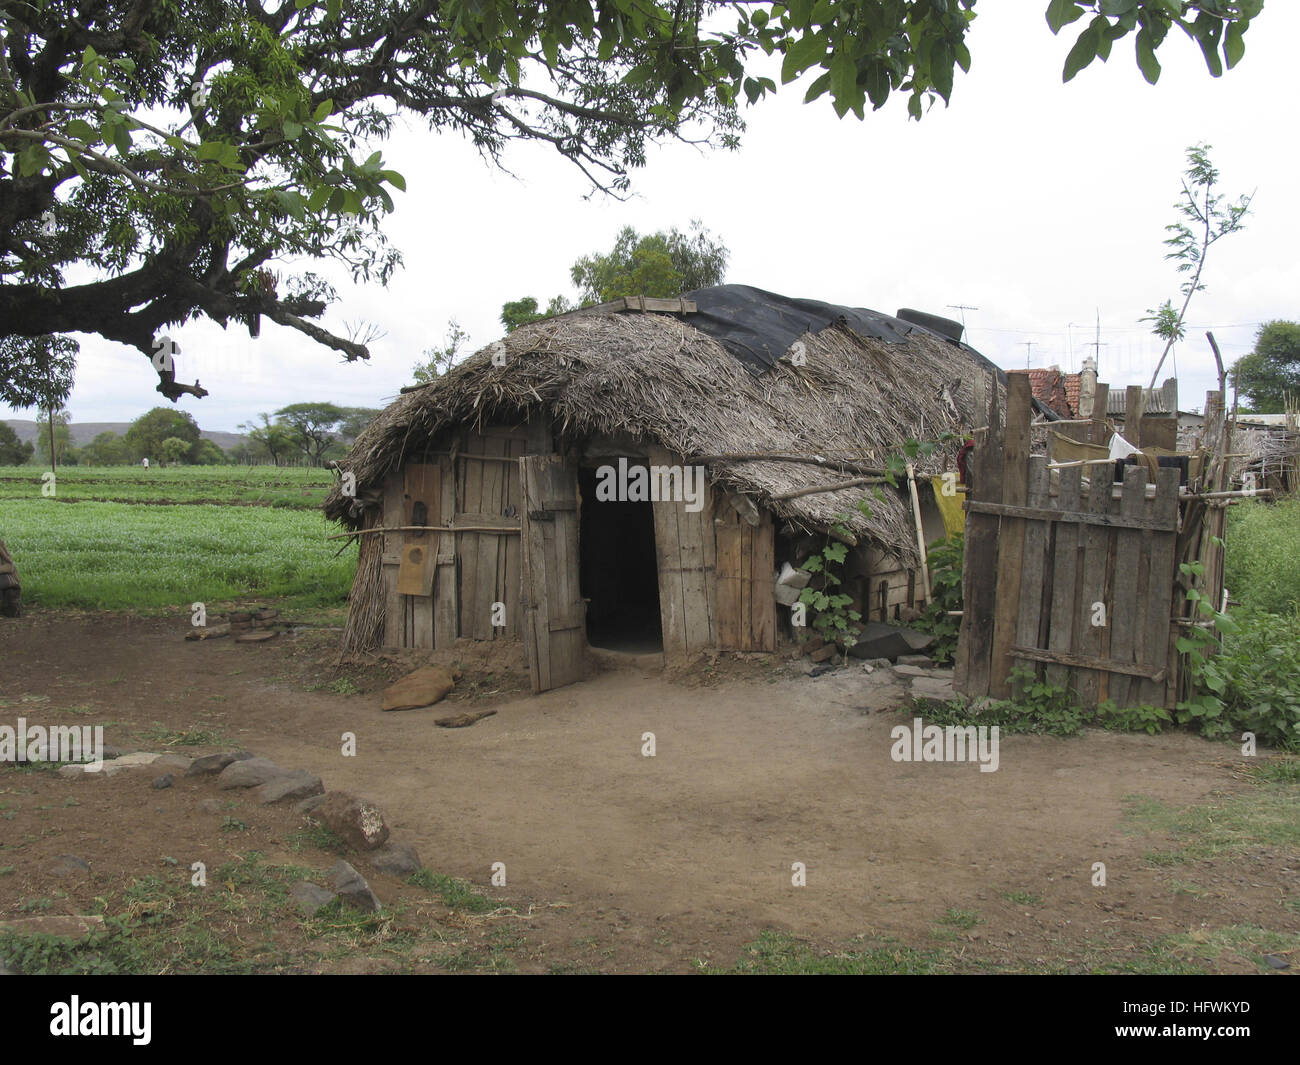 [Image: indian-rural-village-hut-HFWKYD.jpg]